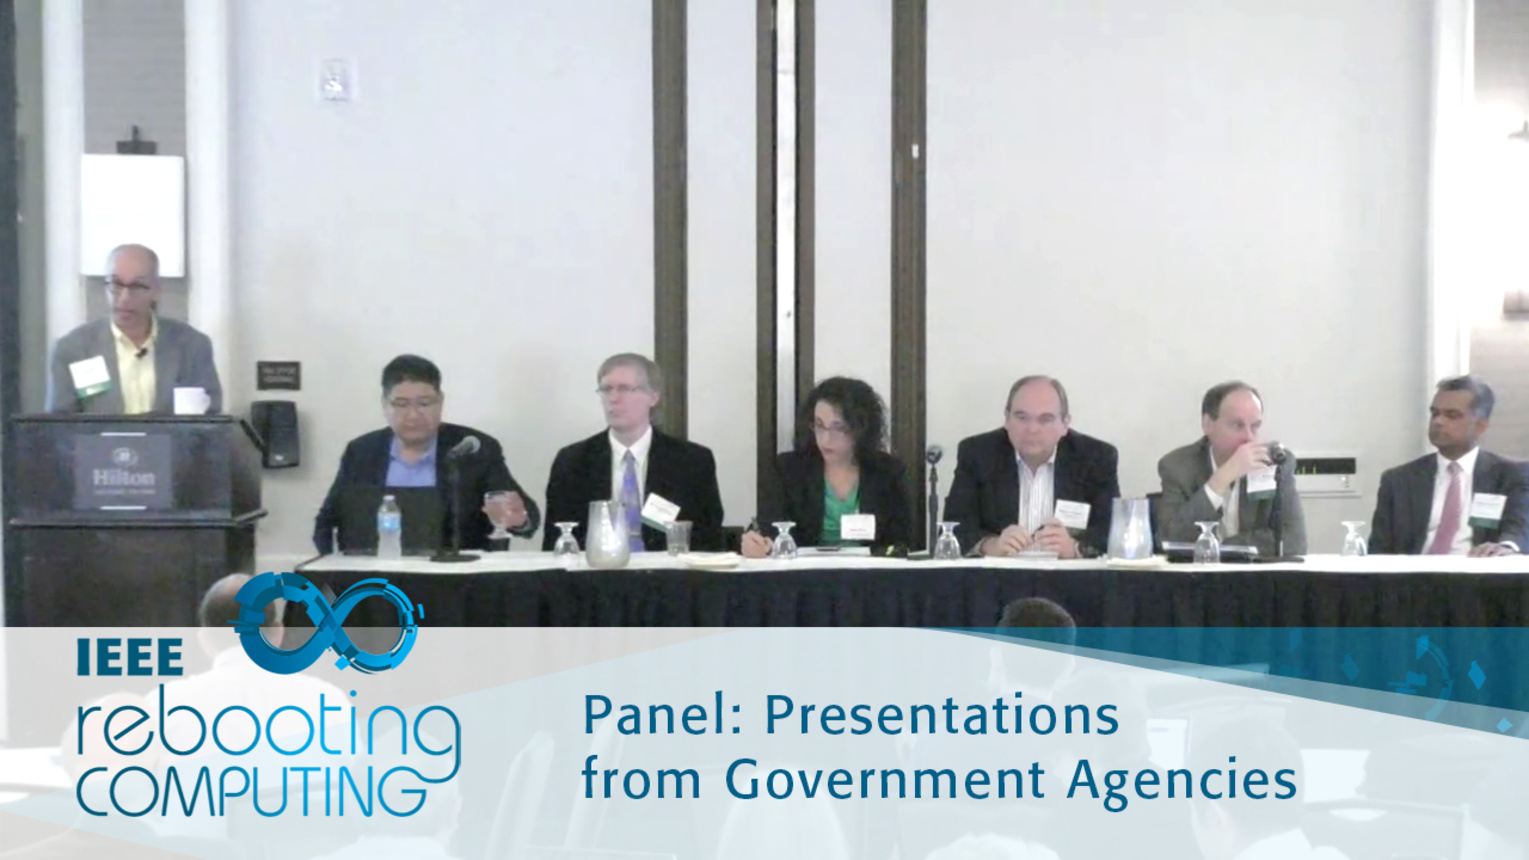 Q&A Government Agencies Panel: 2016 International Conference on Rebooting Computing